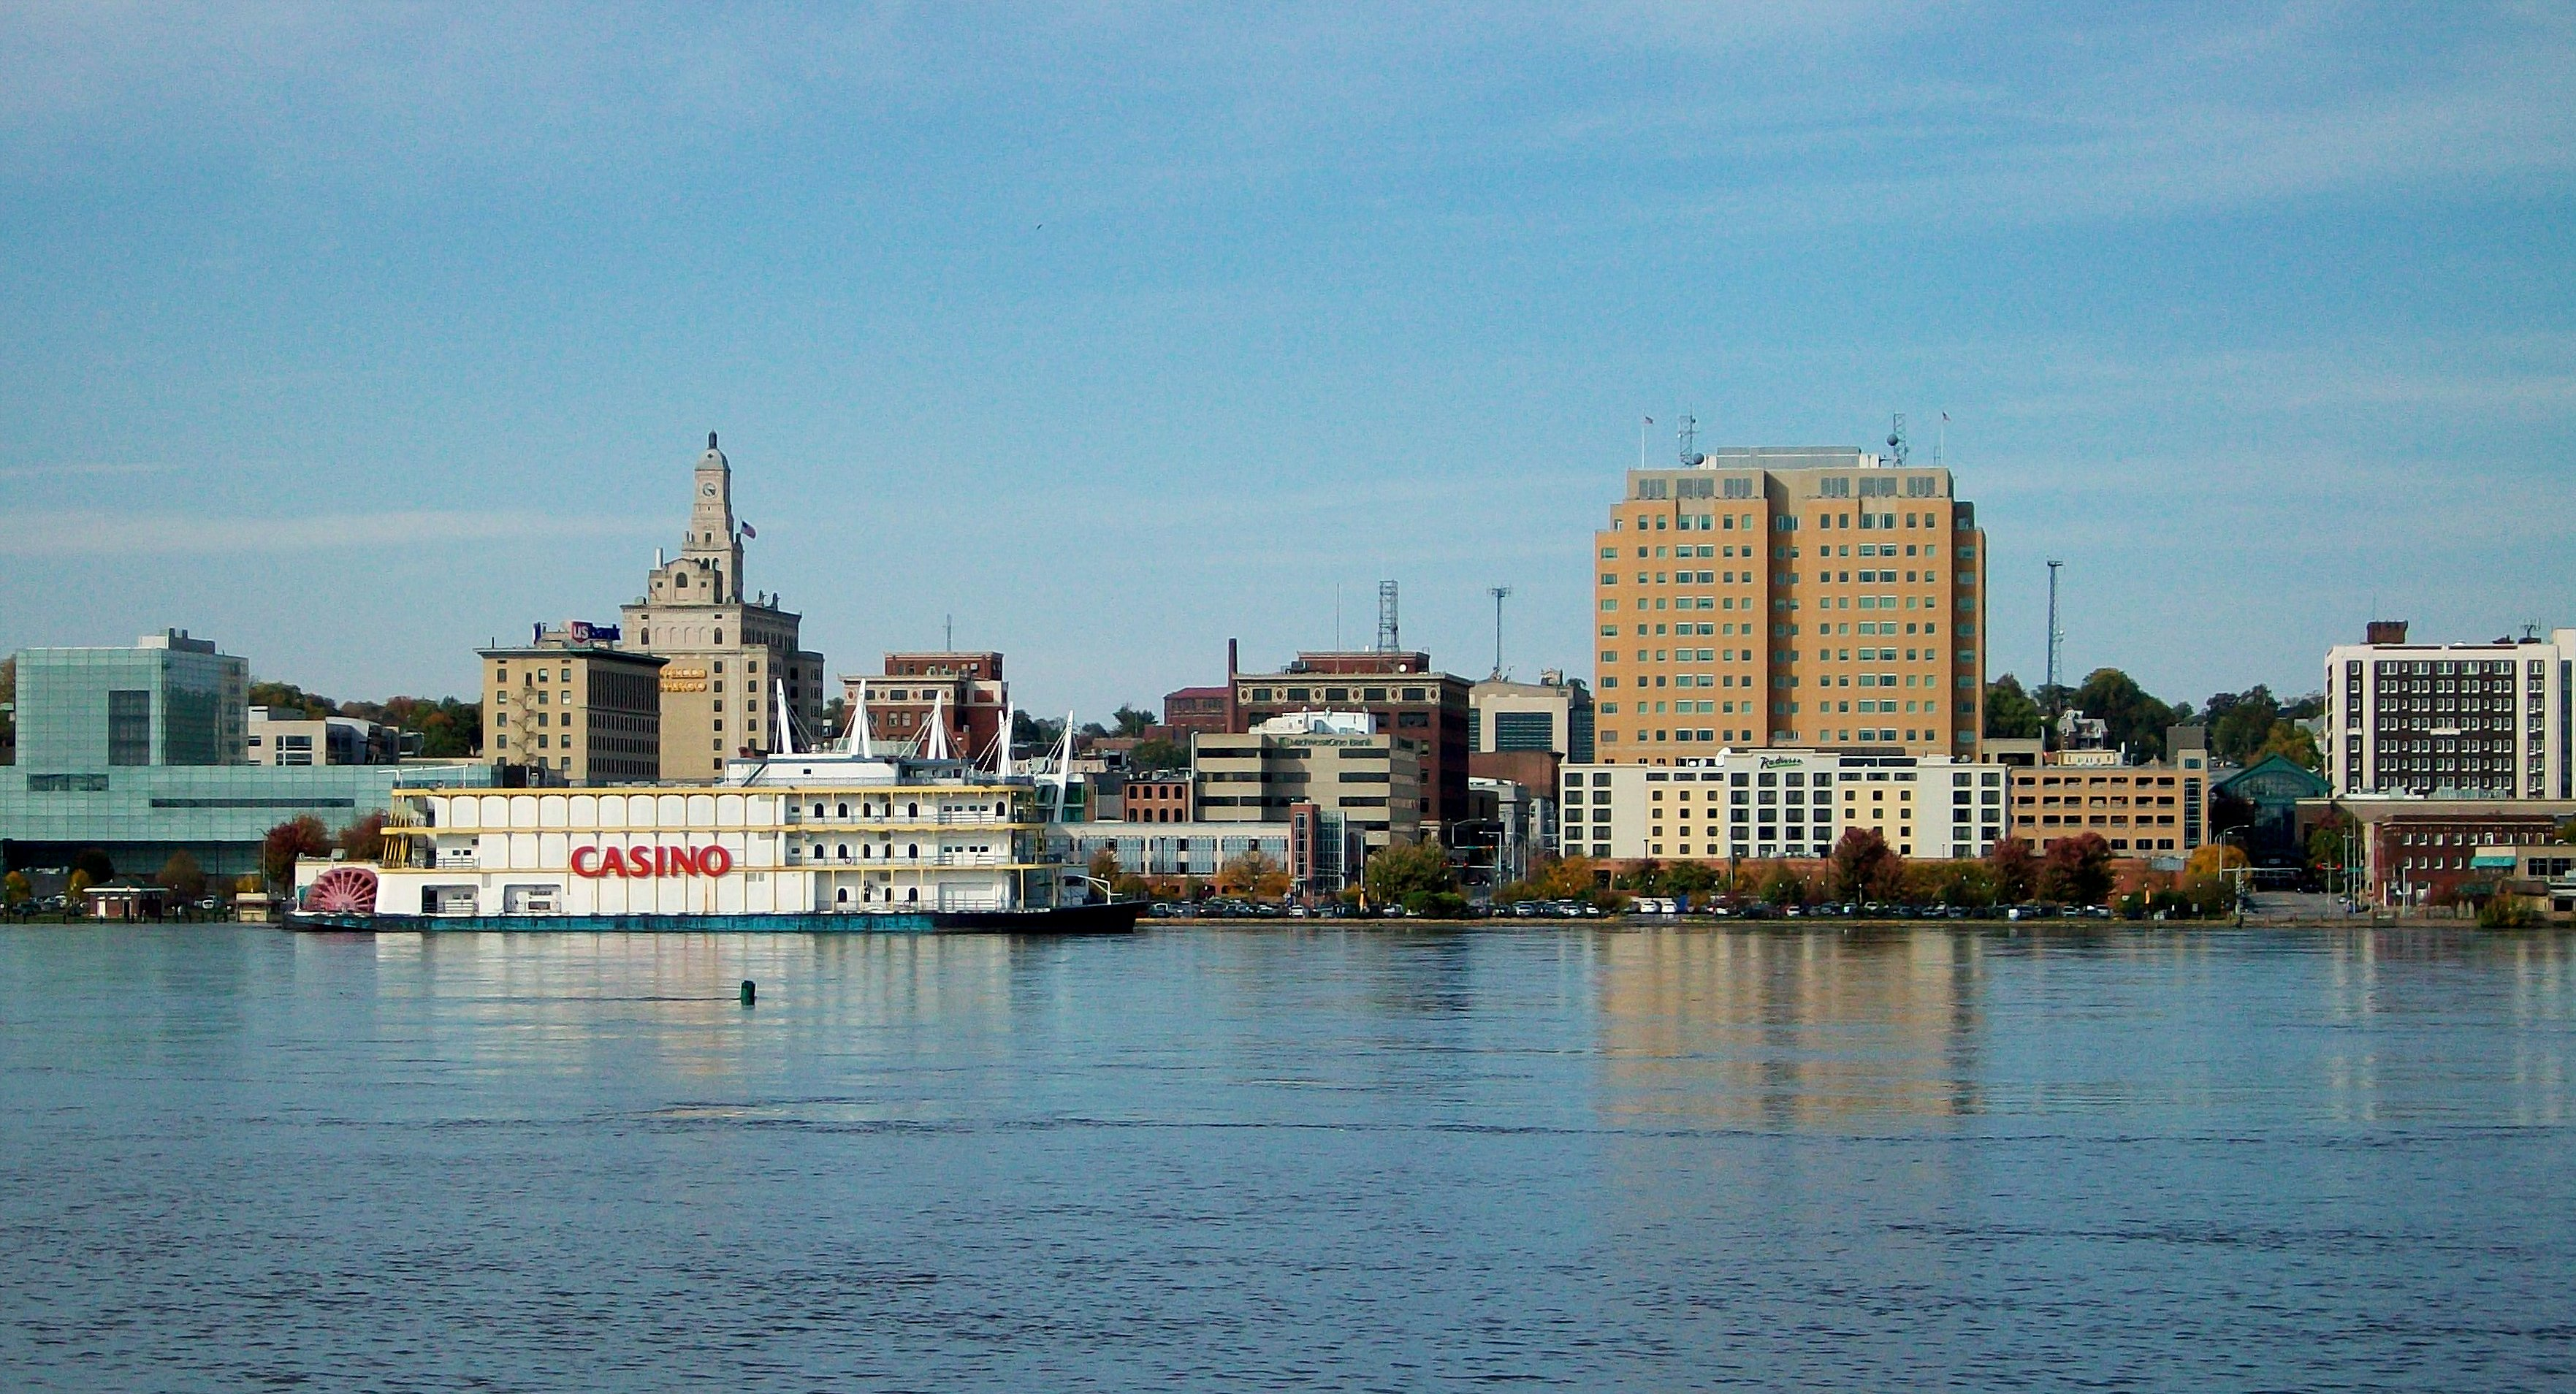 Downtown Davenport, Iowa looking across the Mississippi River from Rock Island, Illinois by ctfj83 - Public Domain